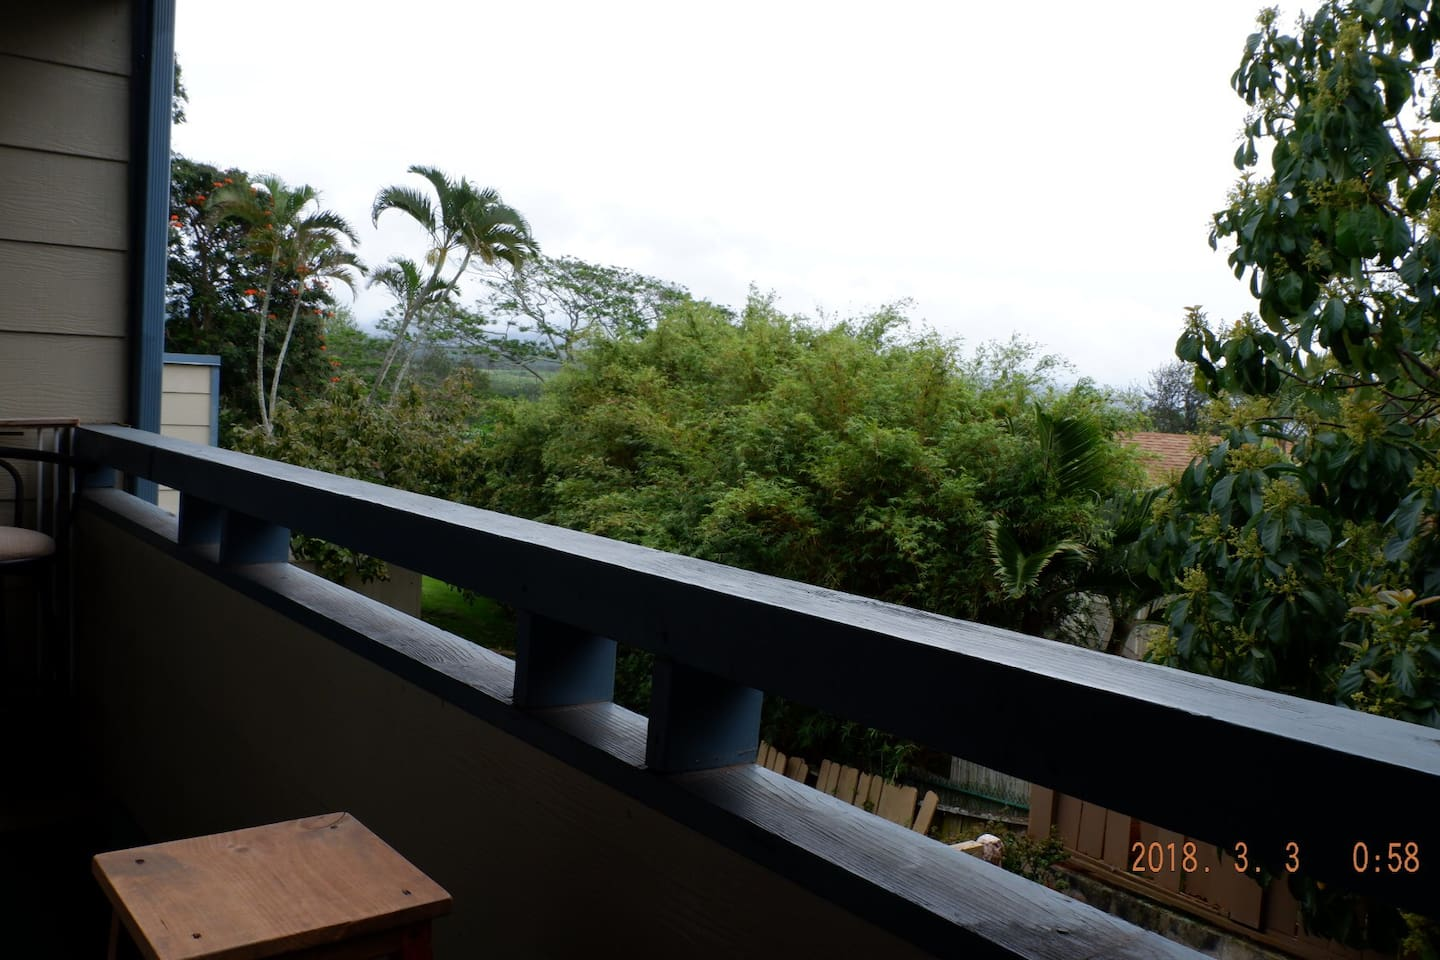 The beautiful view from the balcony, better on sunny days for green parrots flying around and visiting the bird feeder